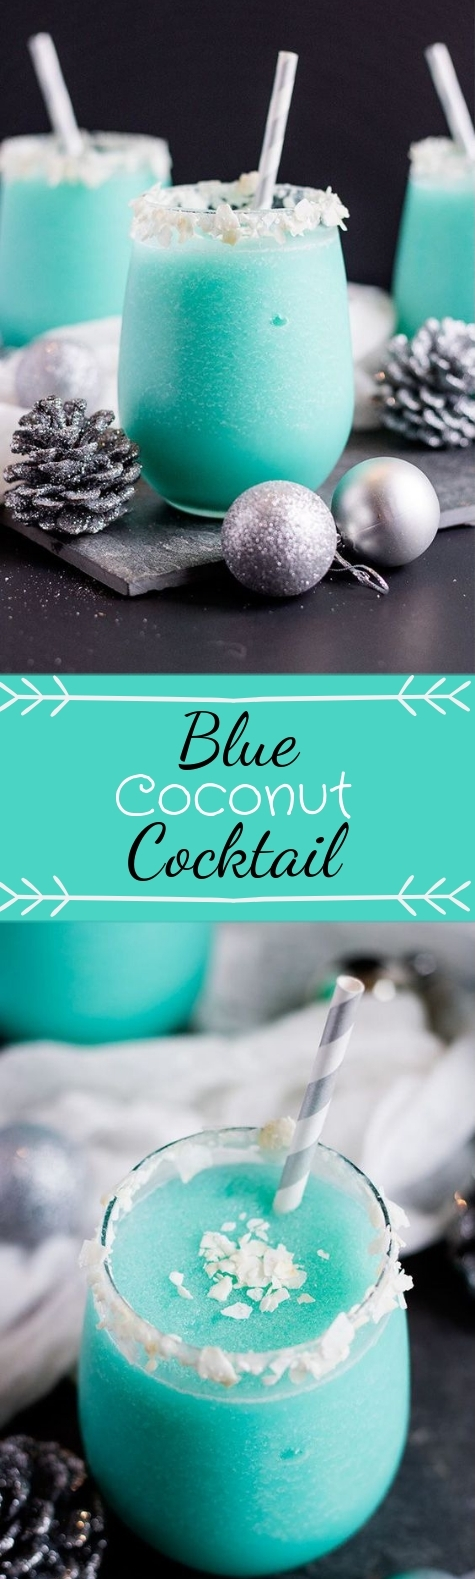 Blue Coconut Cocktail #christmas #cocktail